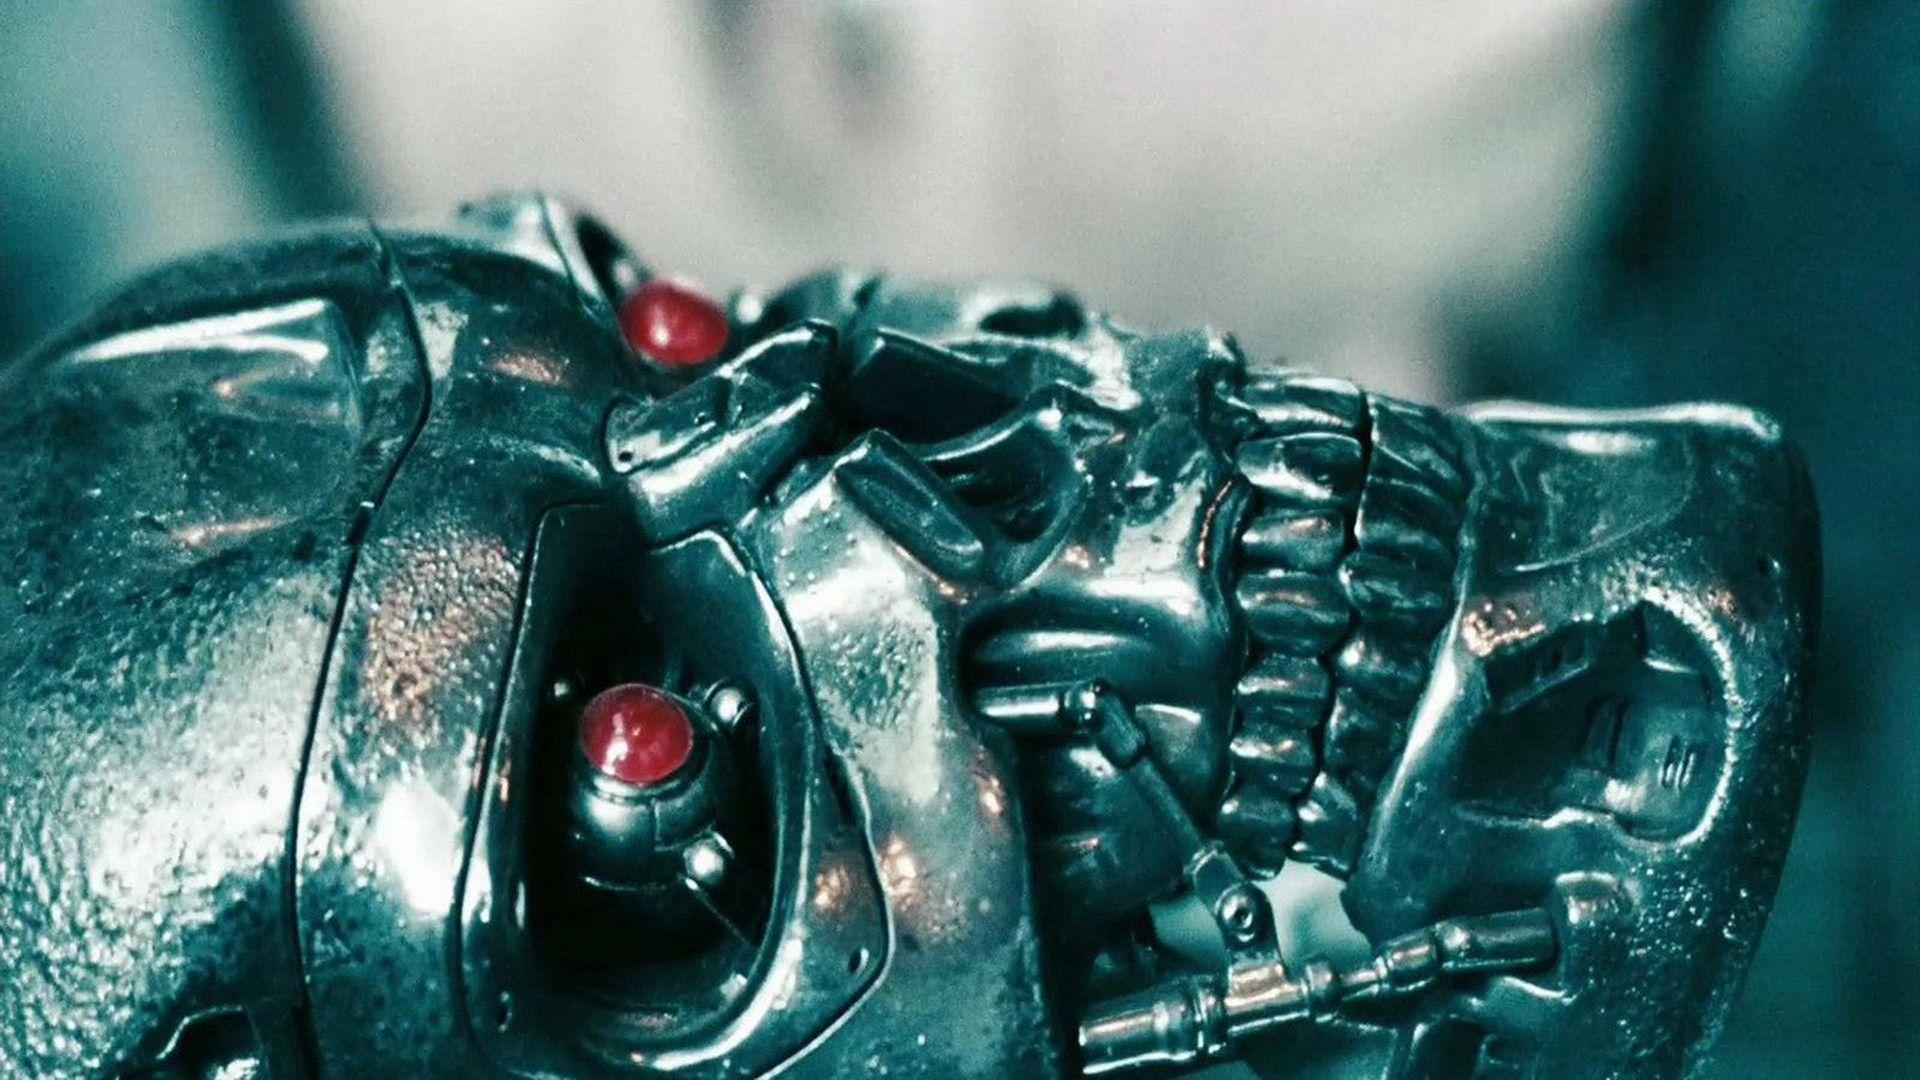 hd wallpapers of terminator salvation Download terminator salvation wallpapers, photos & images in full hd resolution you are viewing all the latest & top collection of terminator salvation wallpapers at one place.